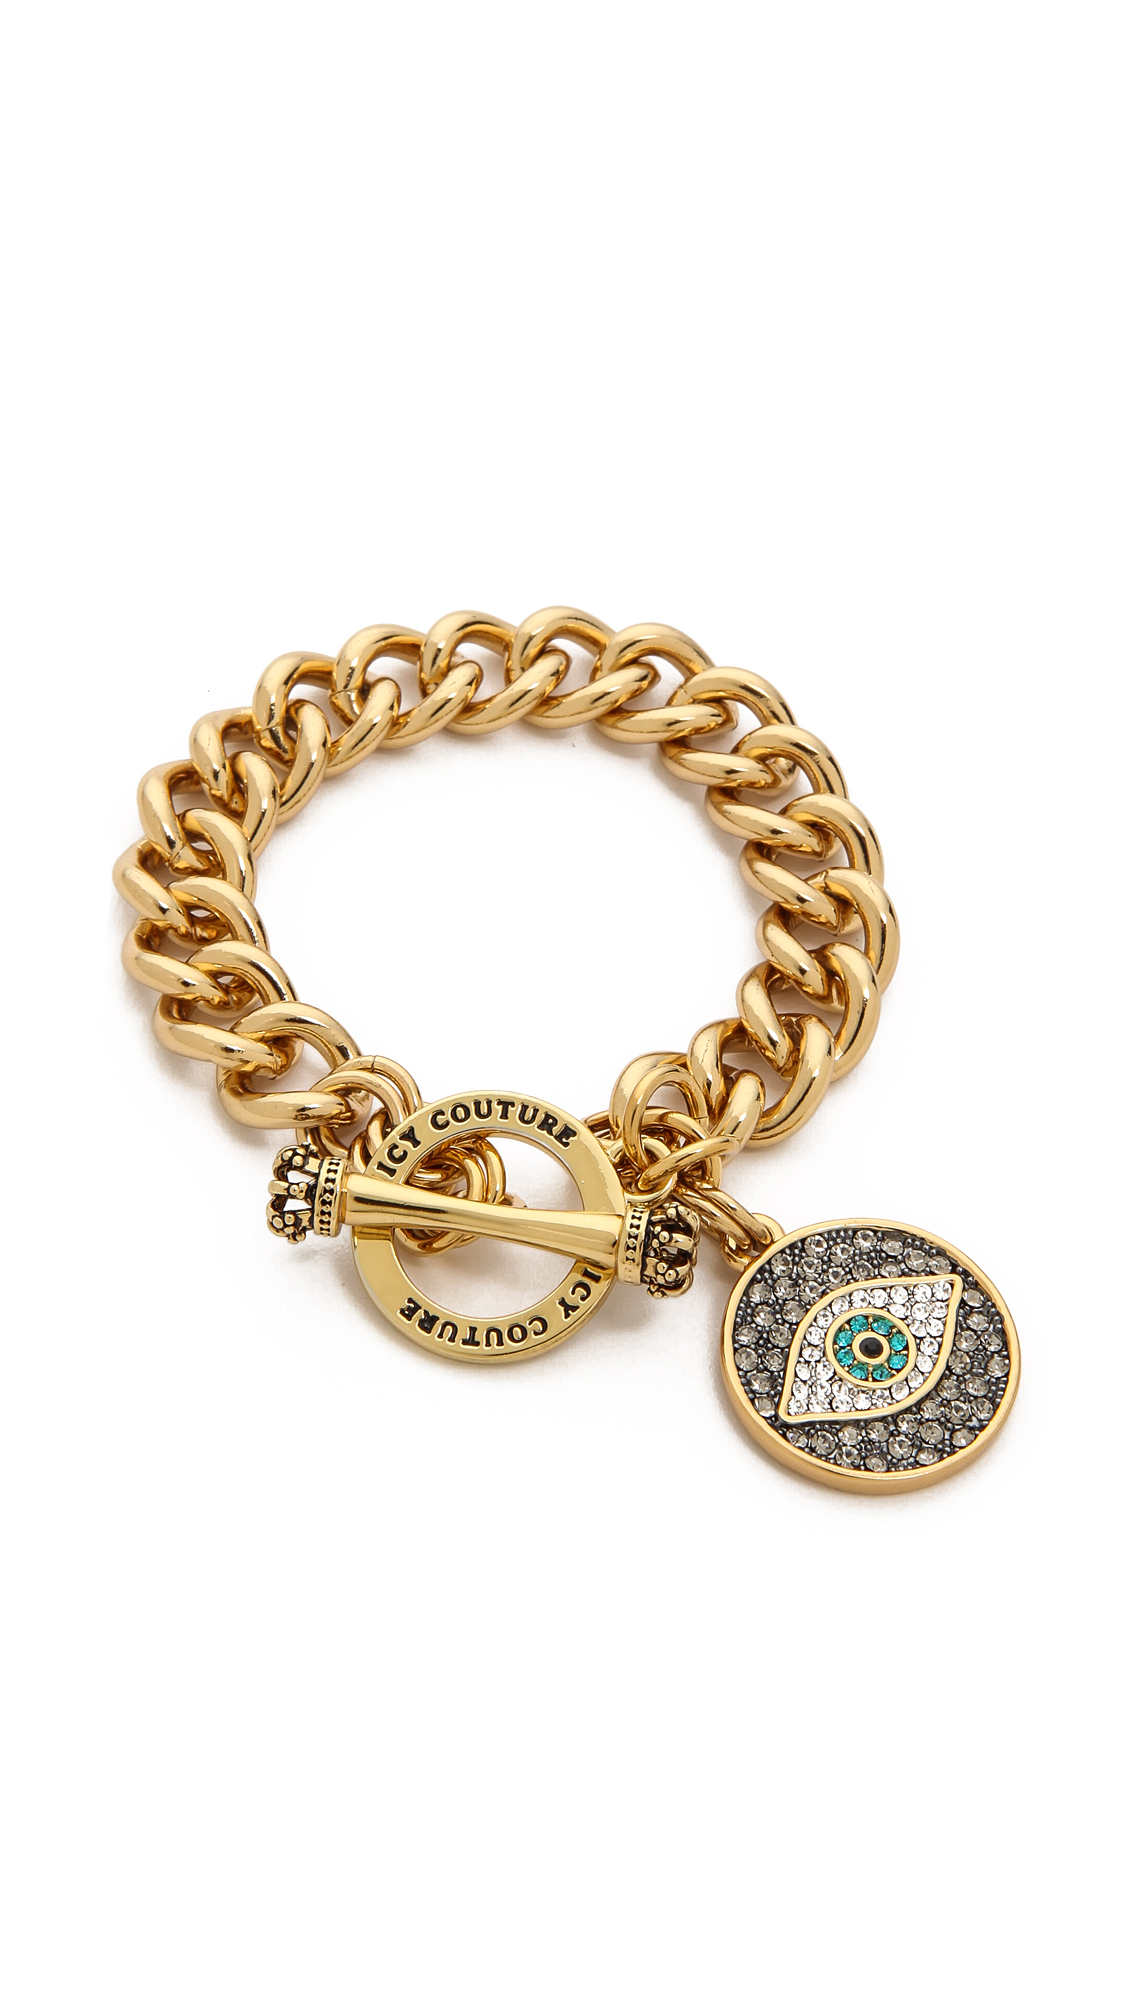 Lyst - Juicy Couture Pave Evil Eye Charm Bracelet Gold in Metallic